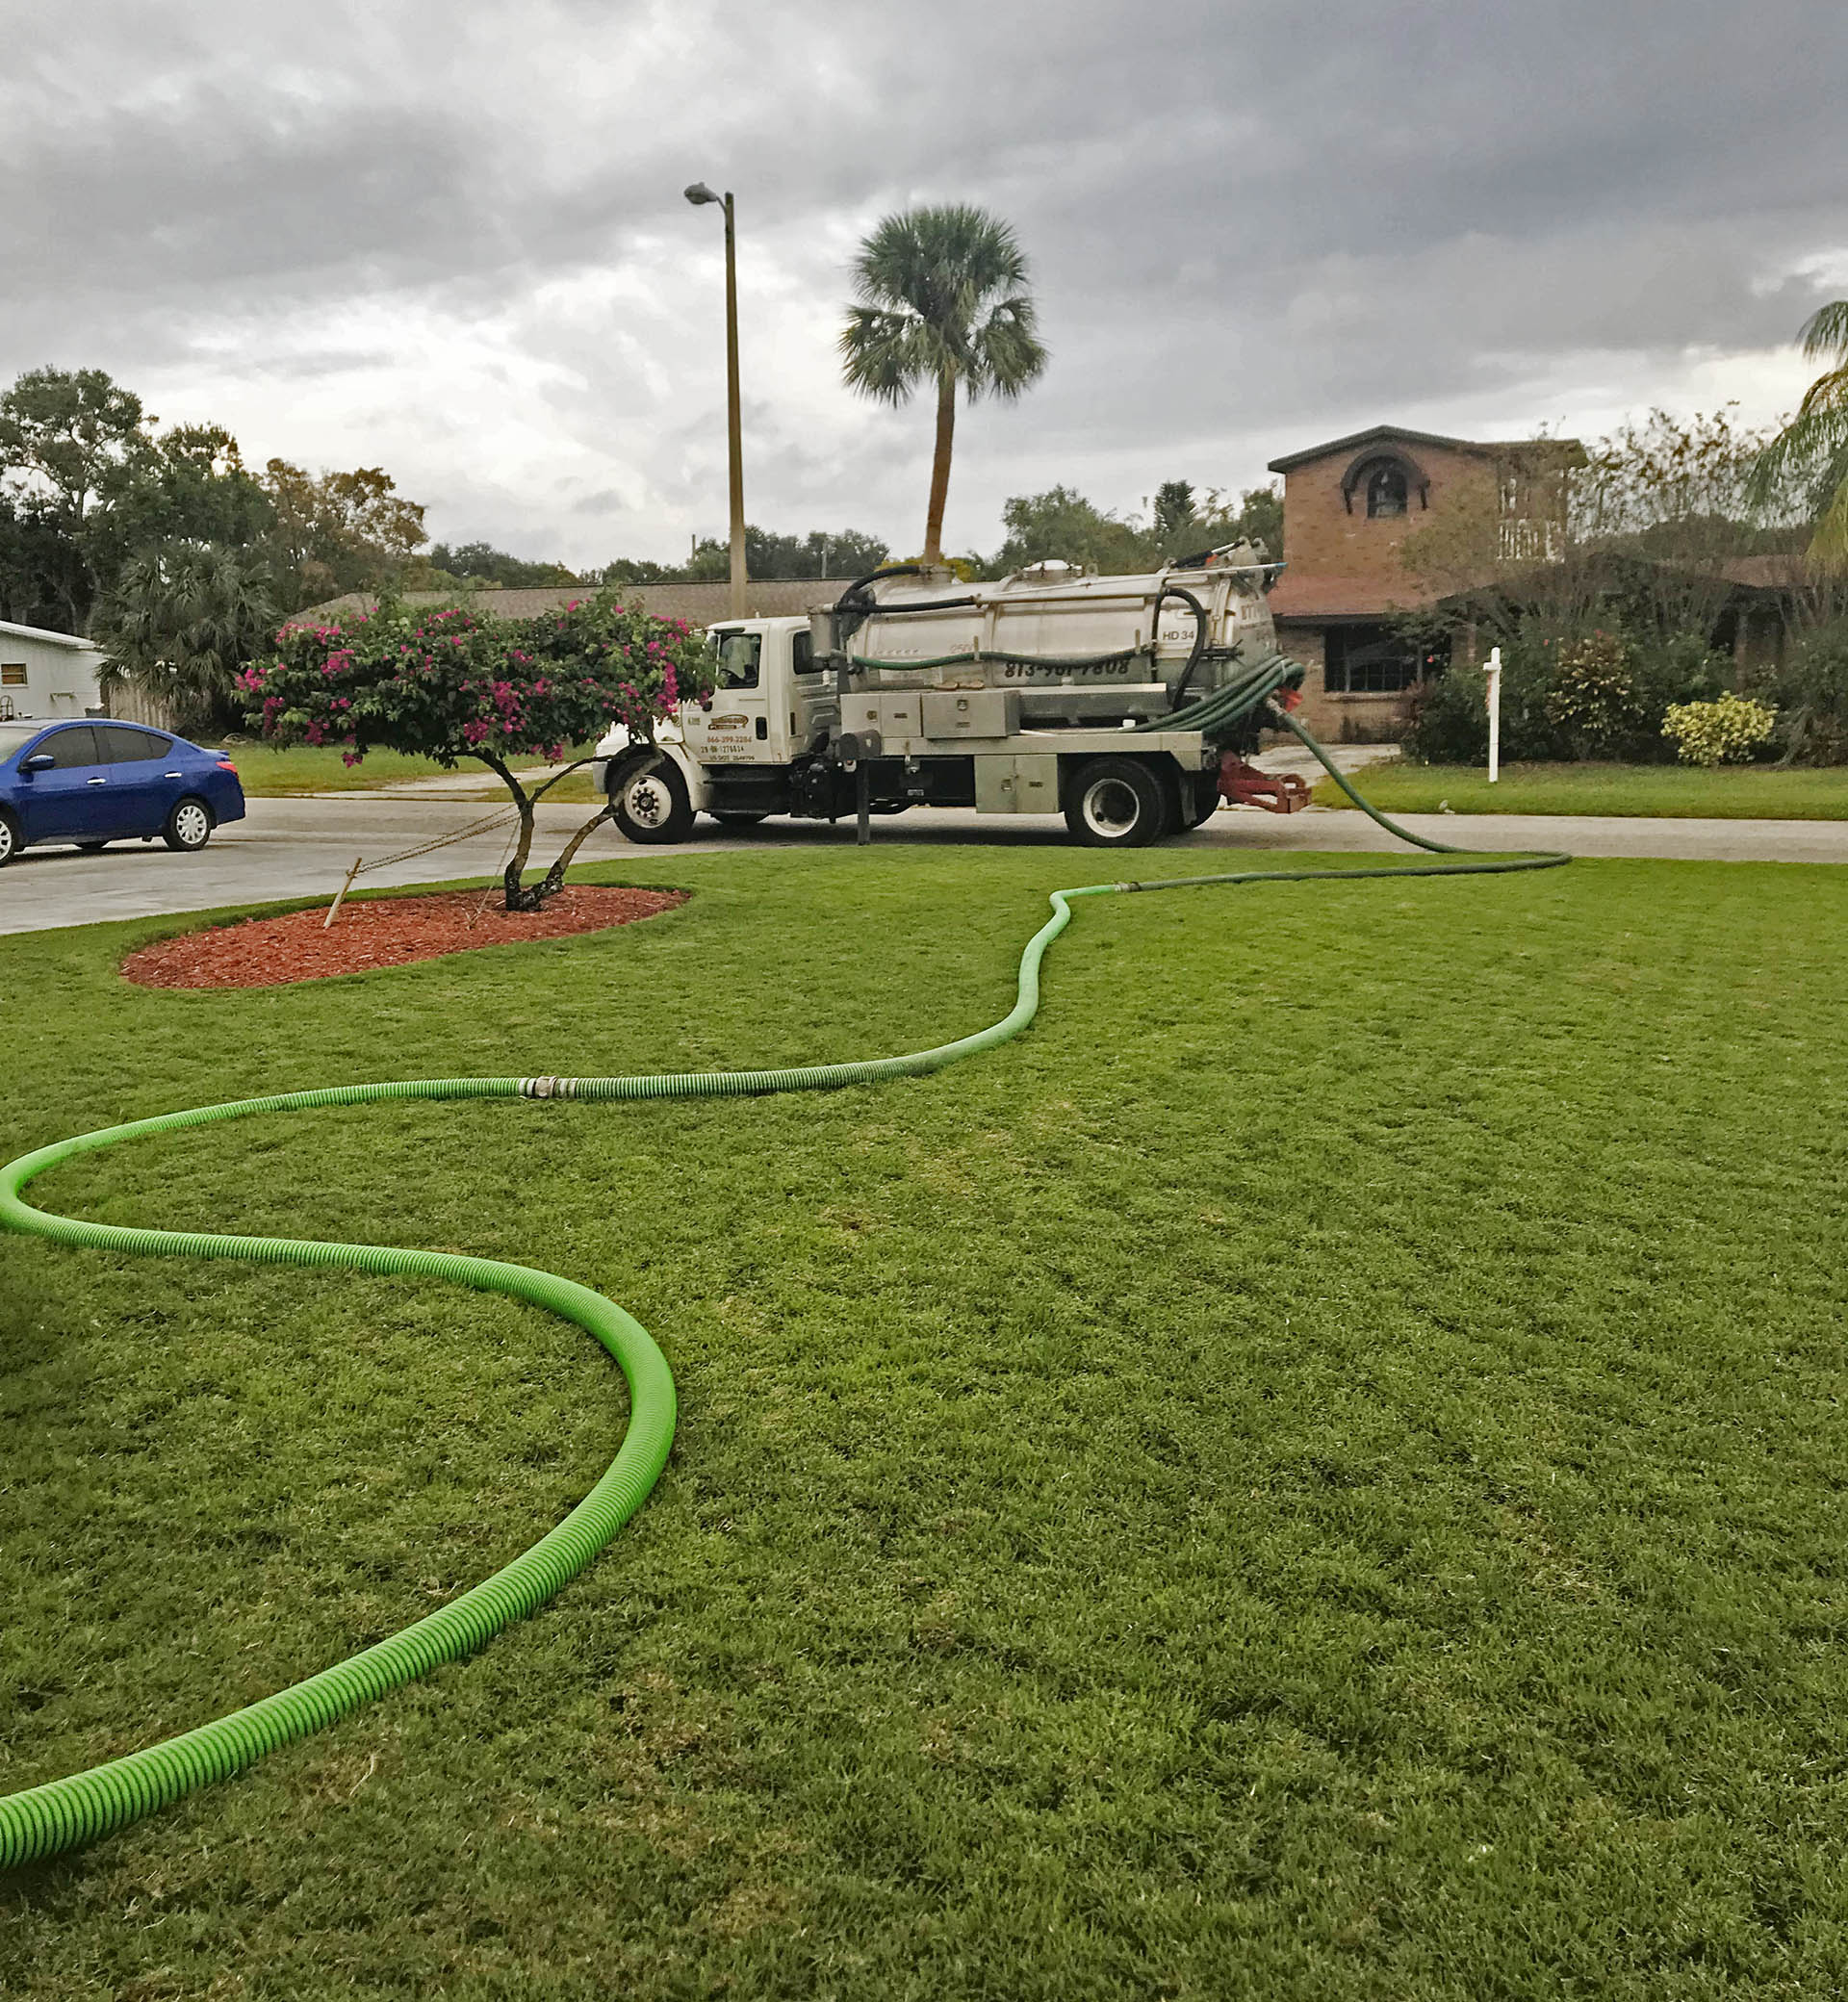 Septic Pump Out Truck Tampa